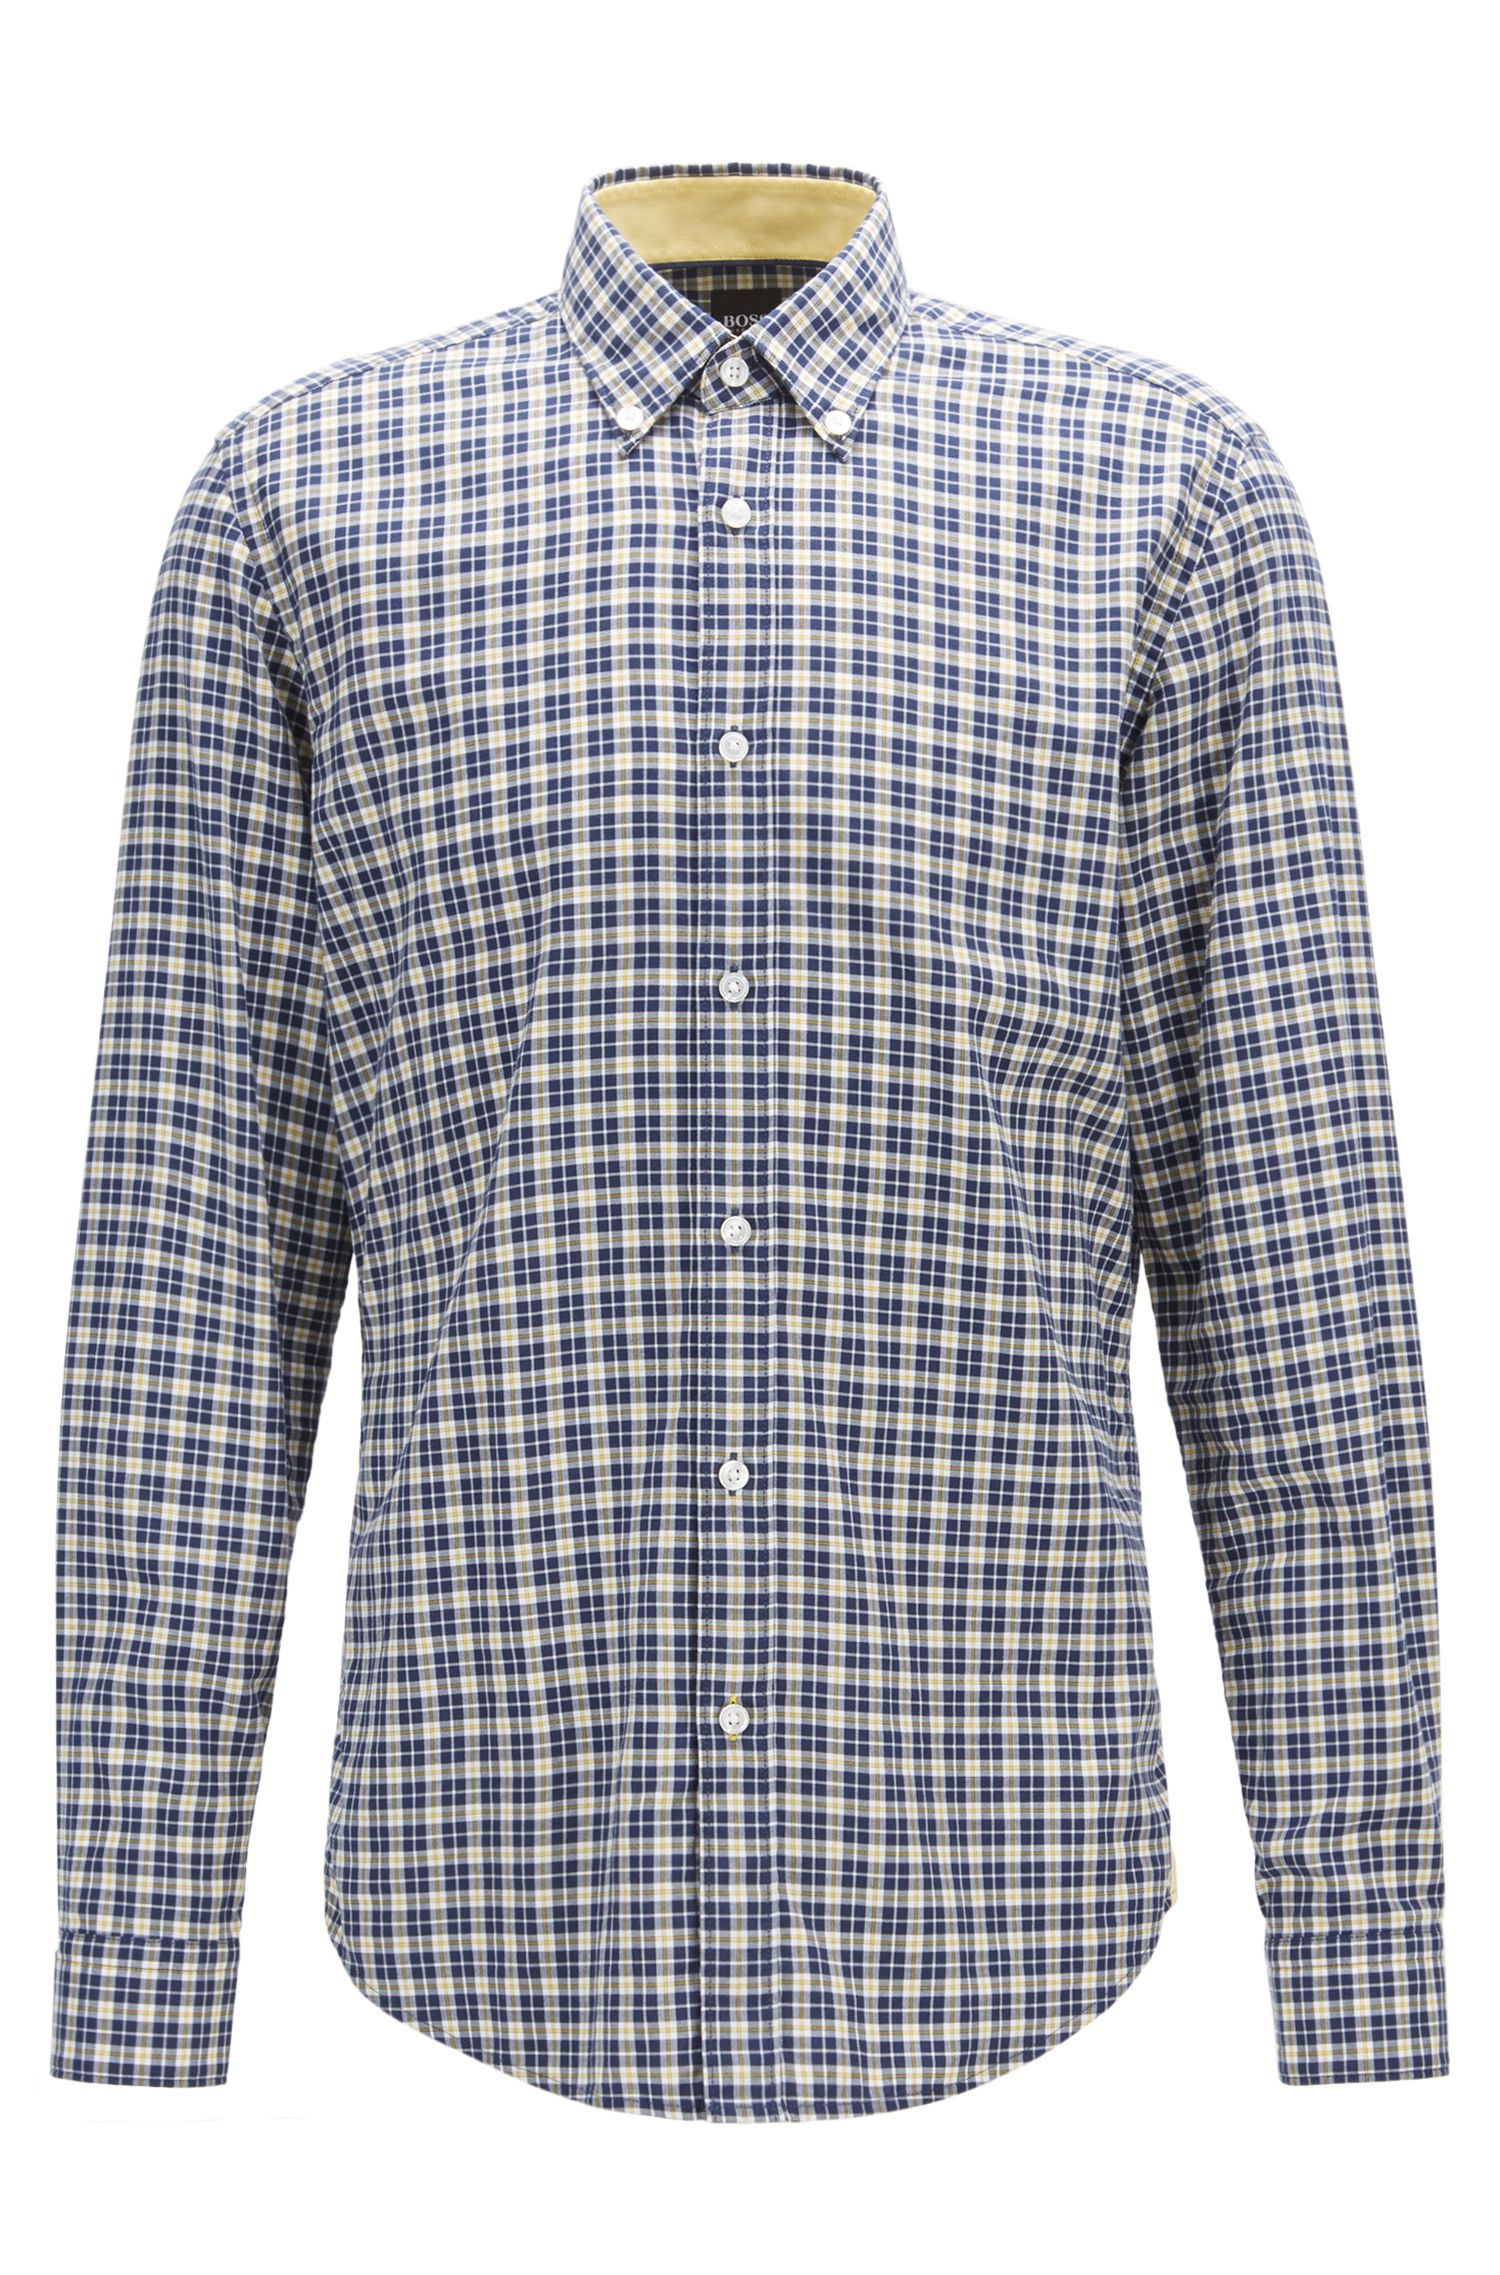 Regular-fit shirt in checked cotton twill